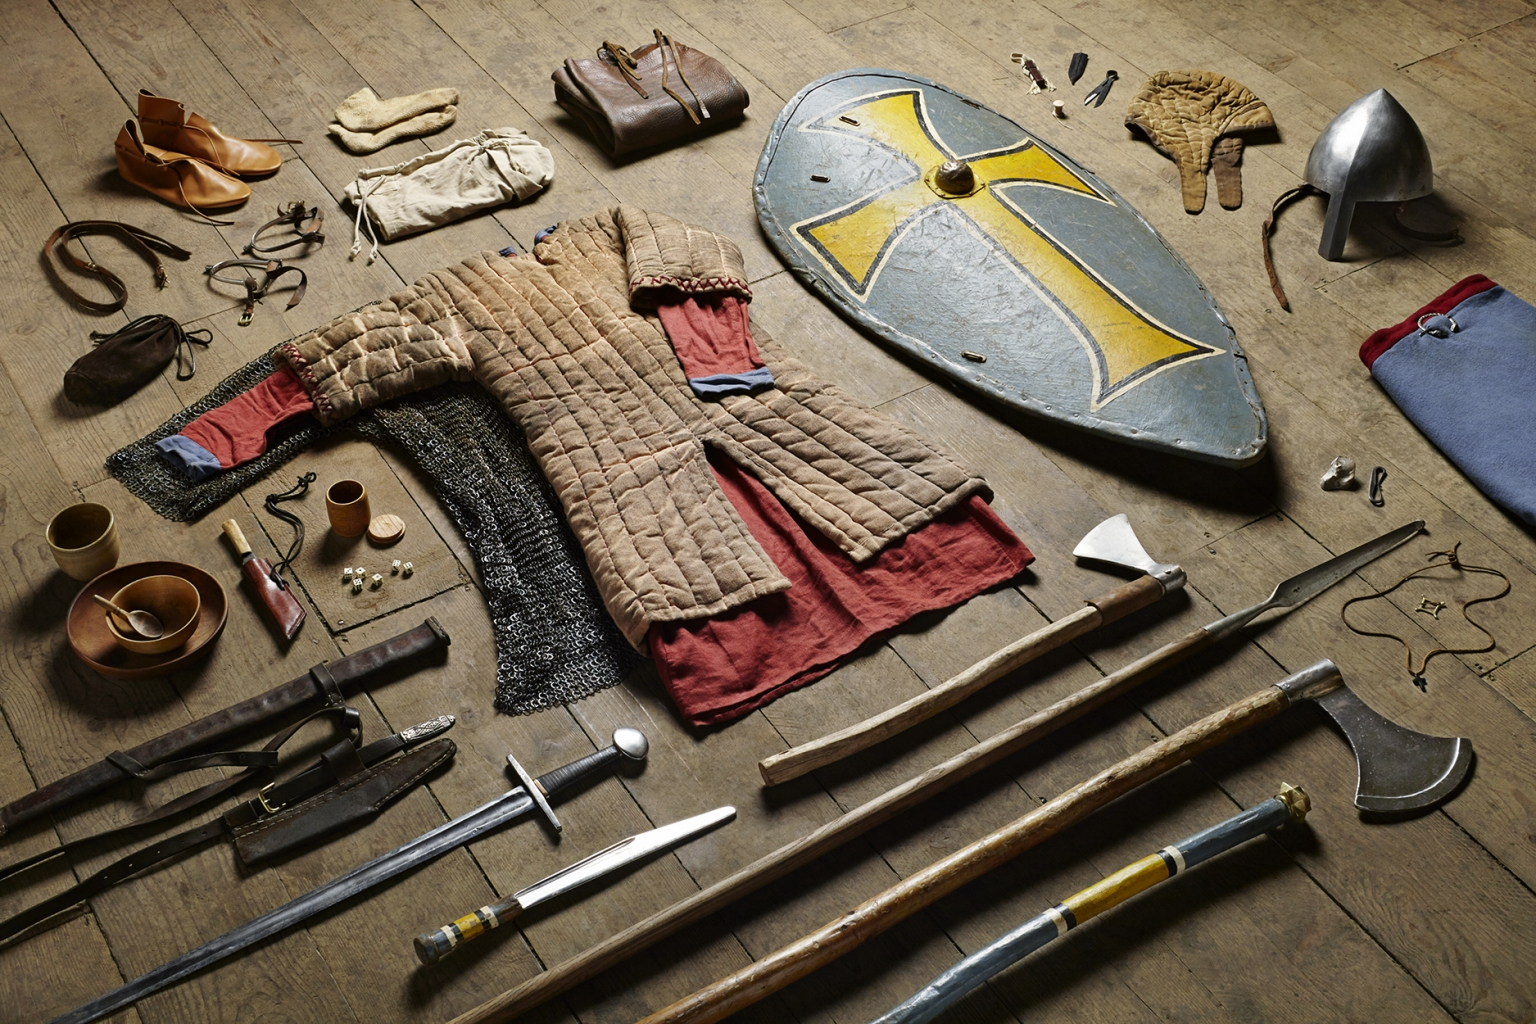 Huscarl, Battle of Hastings, 1066 - Soldiers' Inventories - Photo by Thom Atkinson